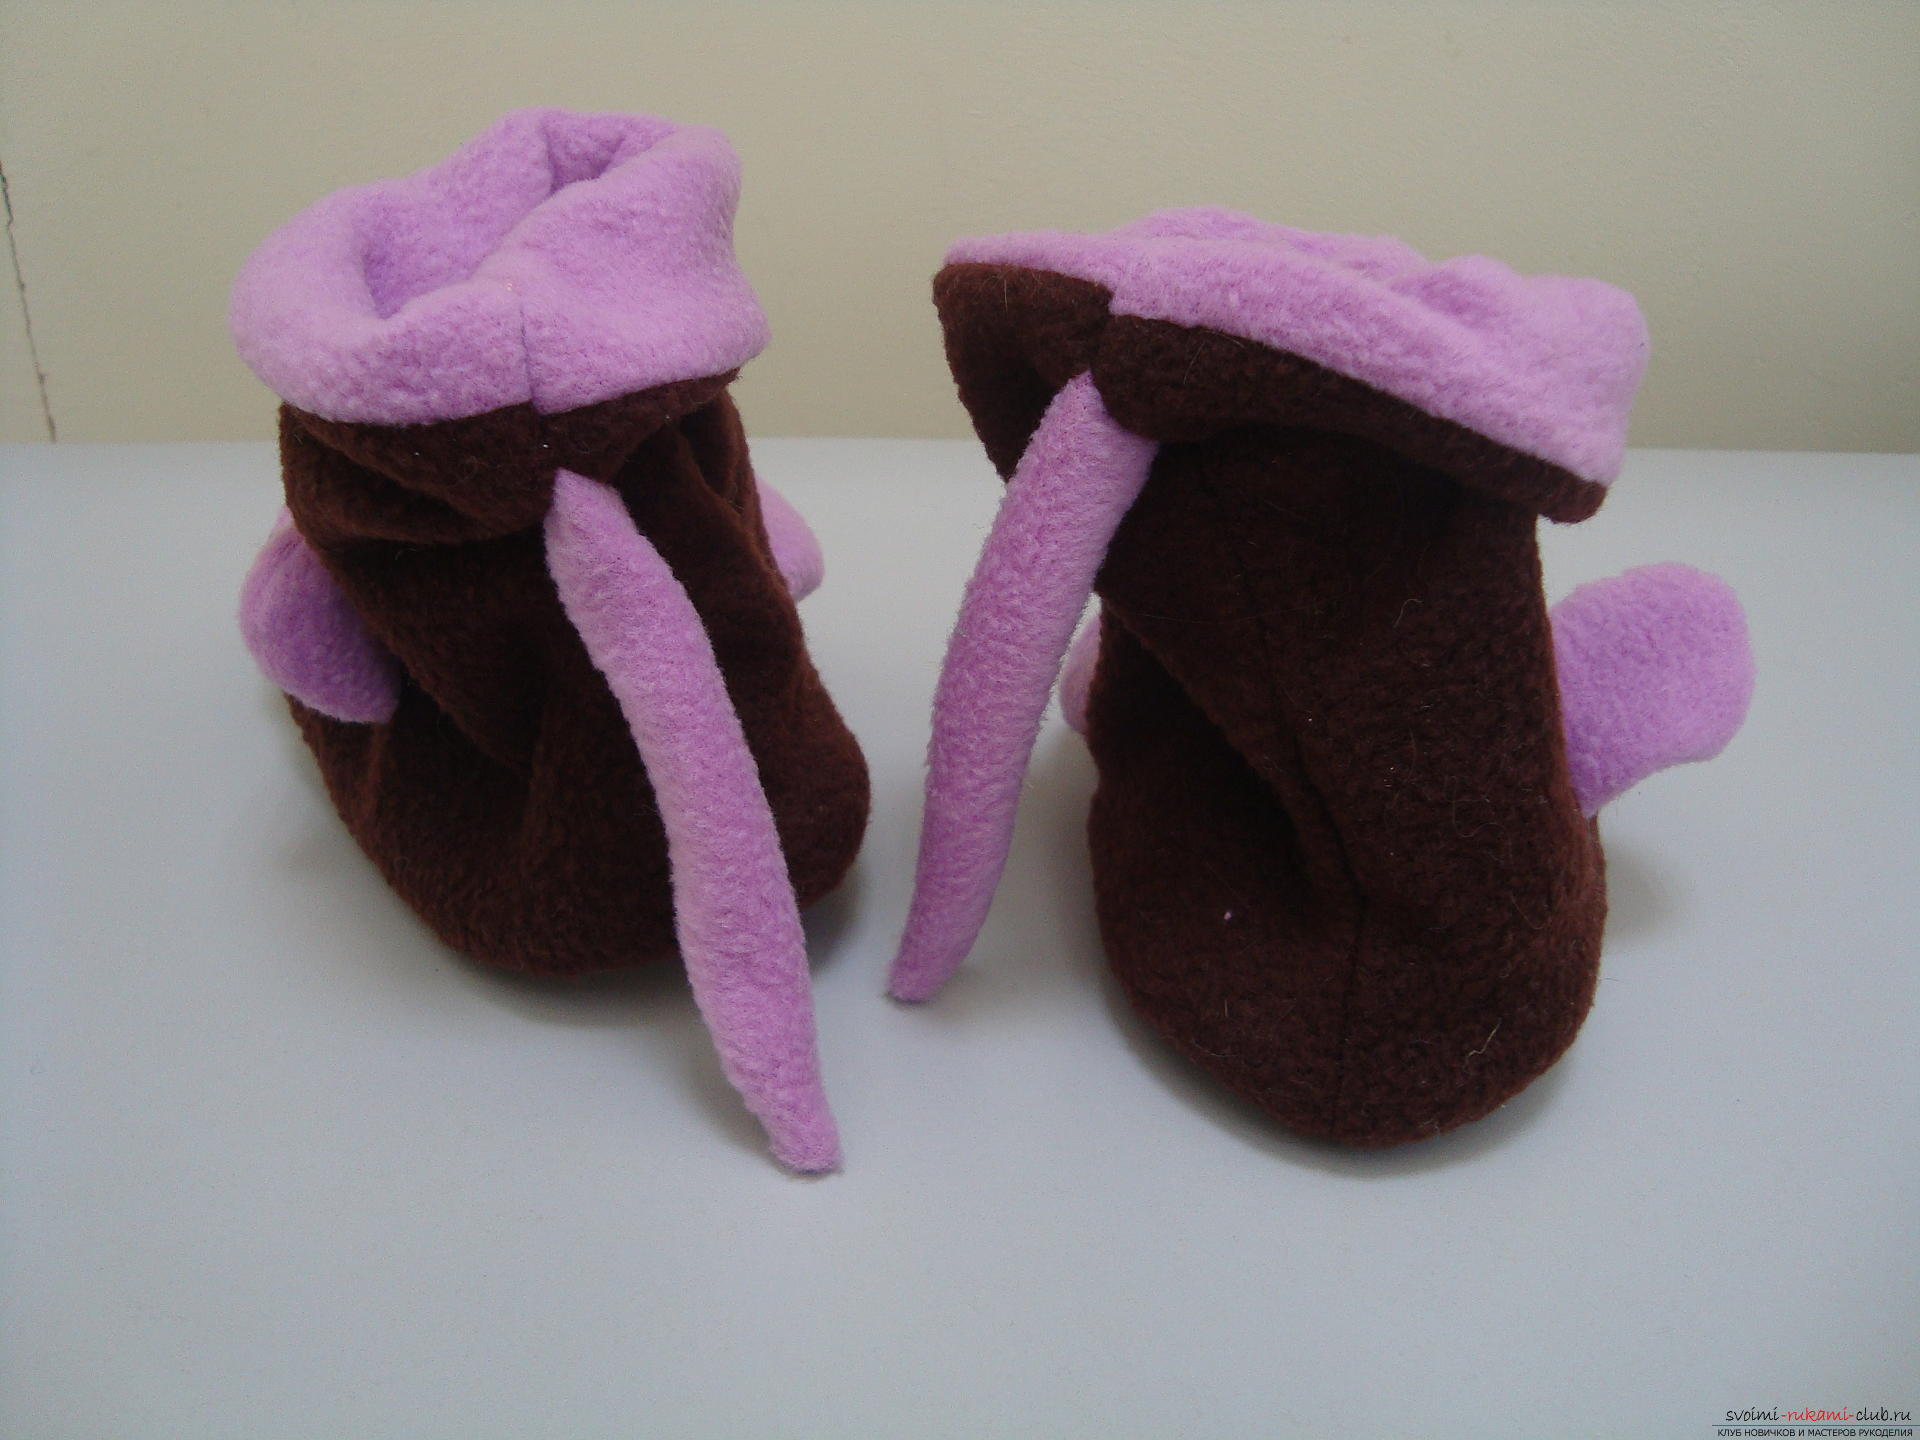 This master class will teach how to sew hand-made house slippers with the symbol of the year - the monkey .. Photo # 4